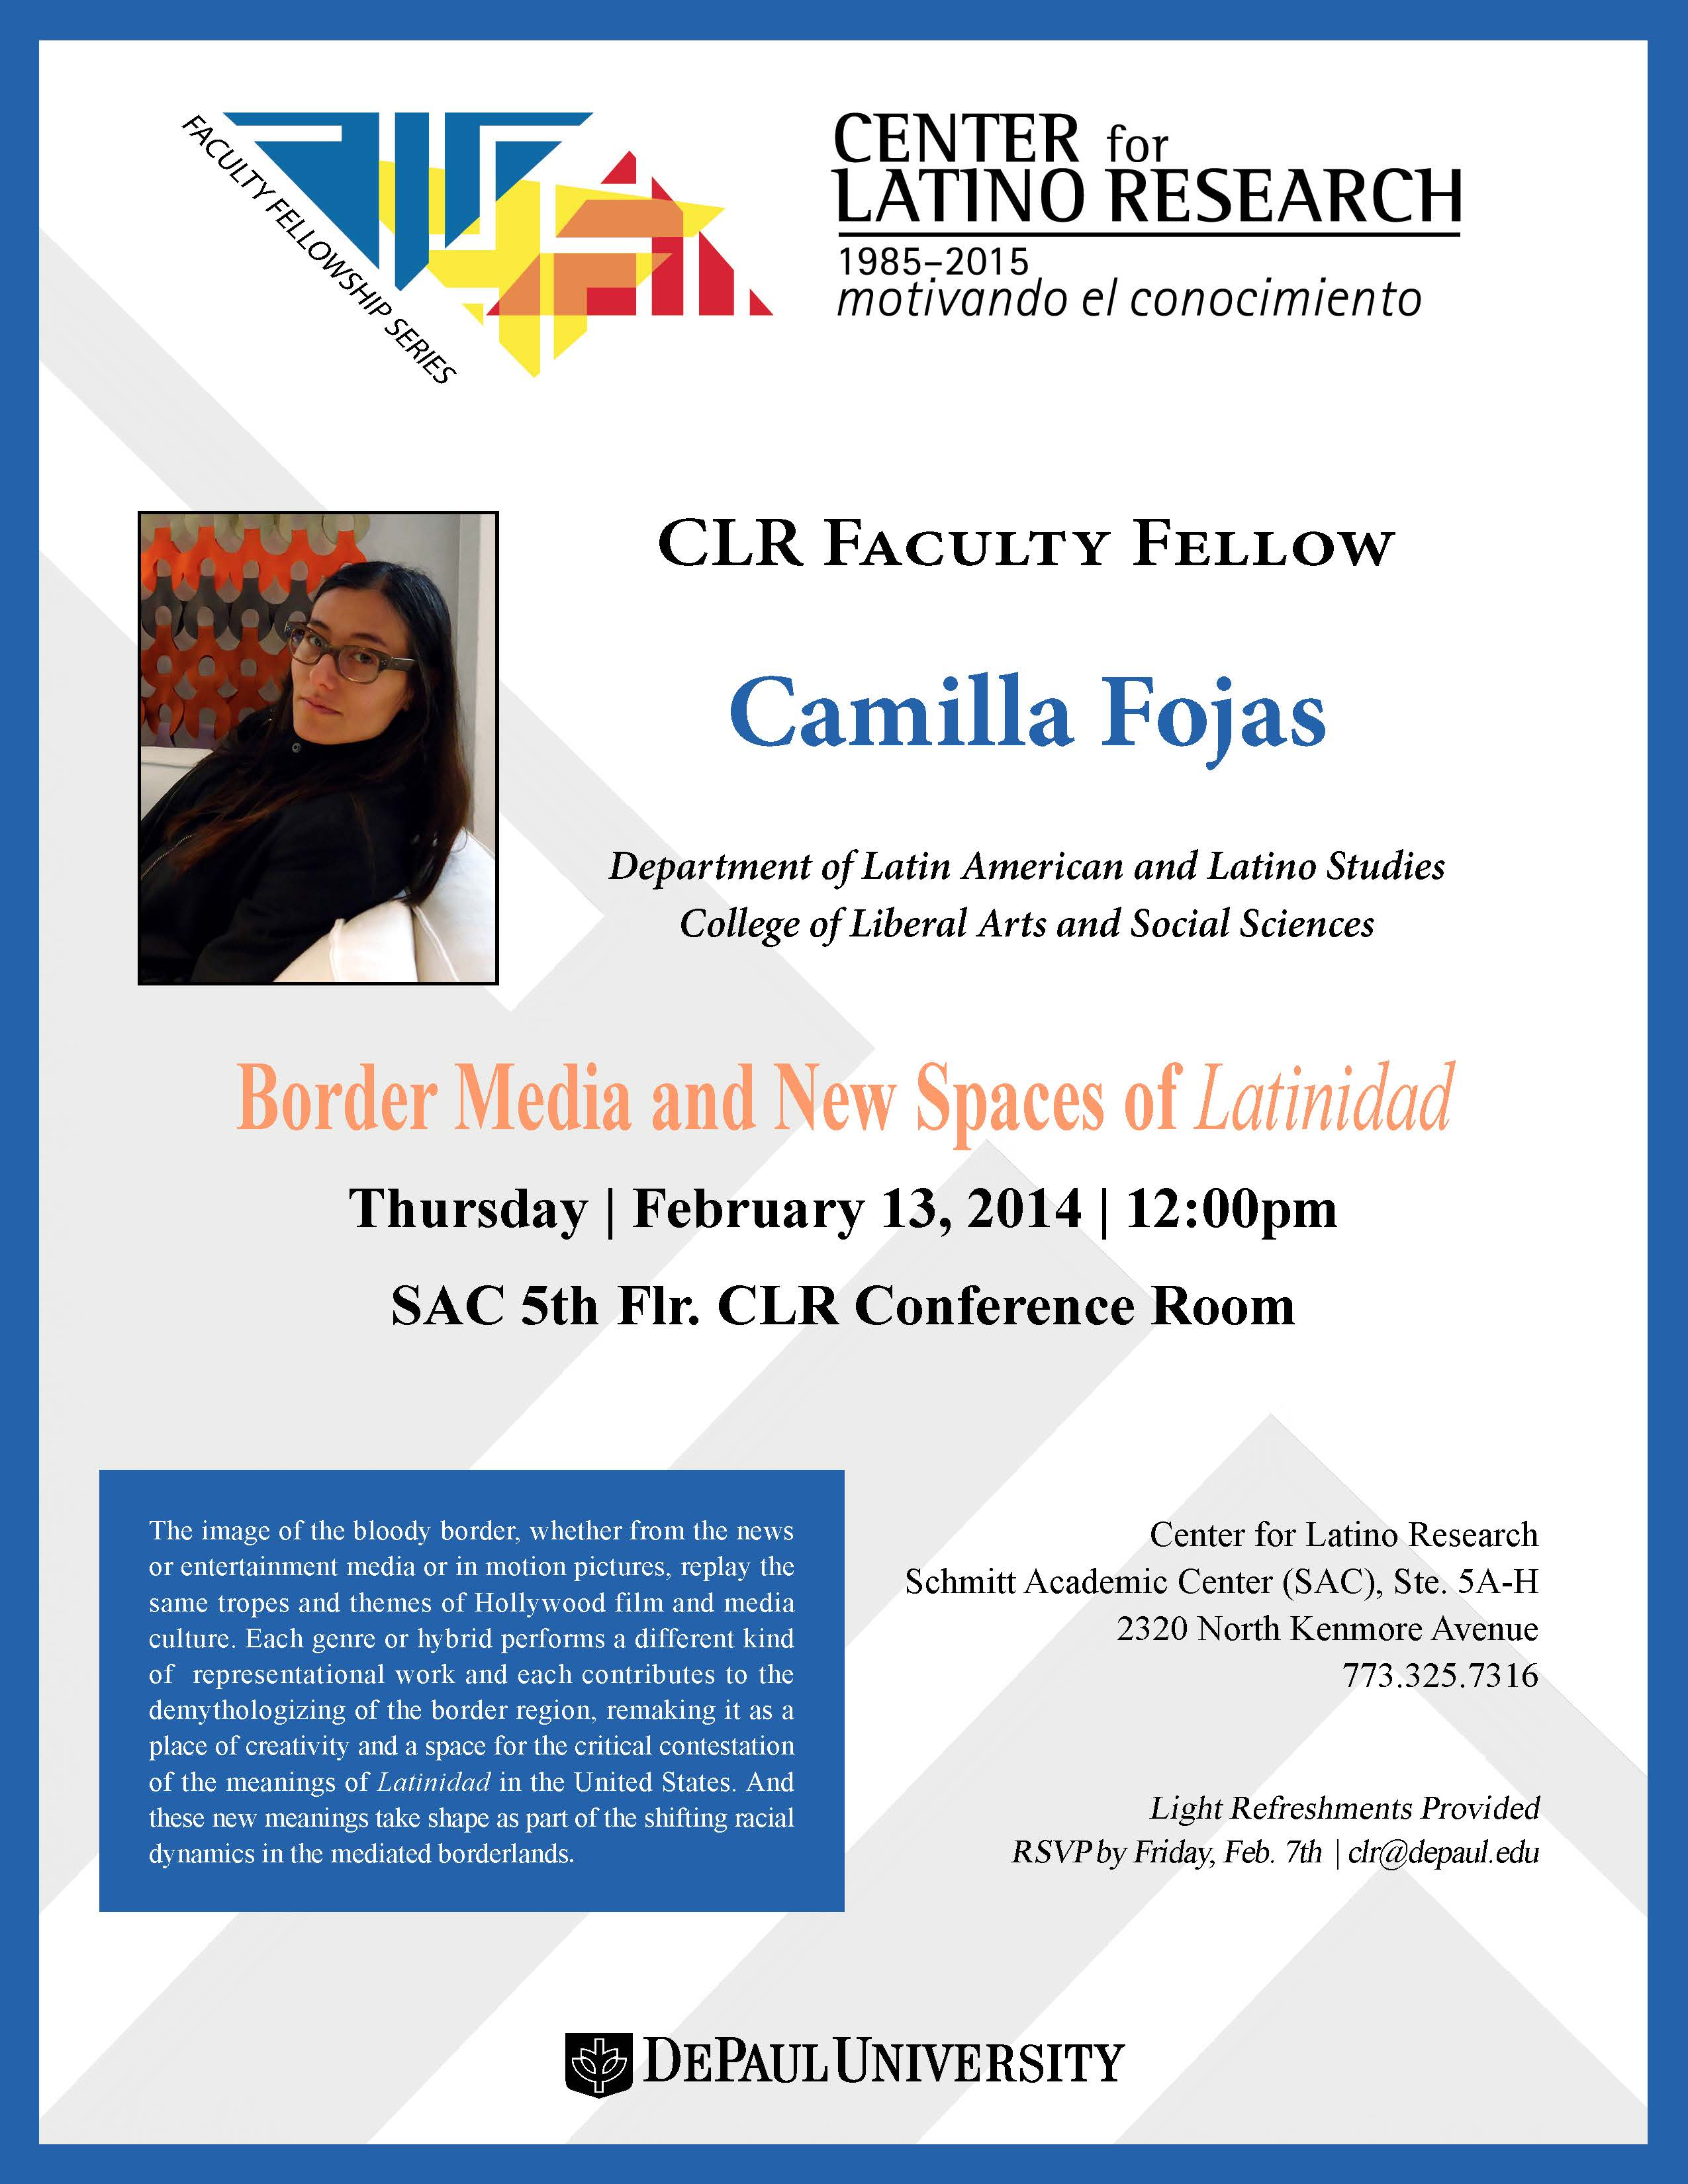 CLR Faculty Fellowship Research Presentation  |  Dr. Camilla Fojas